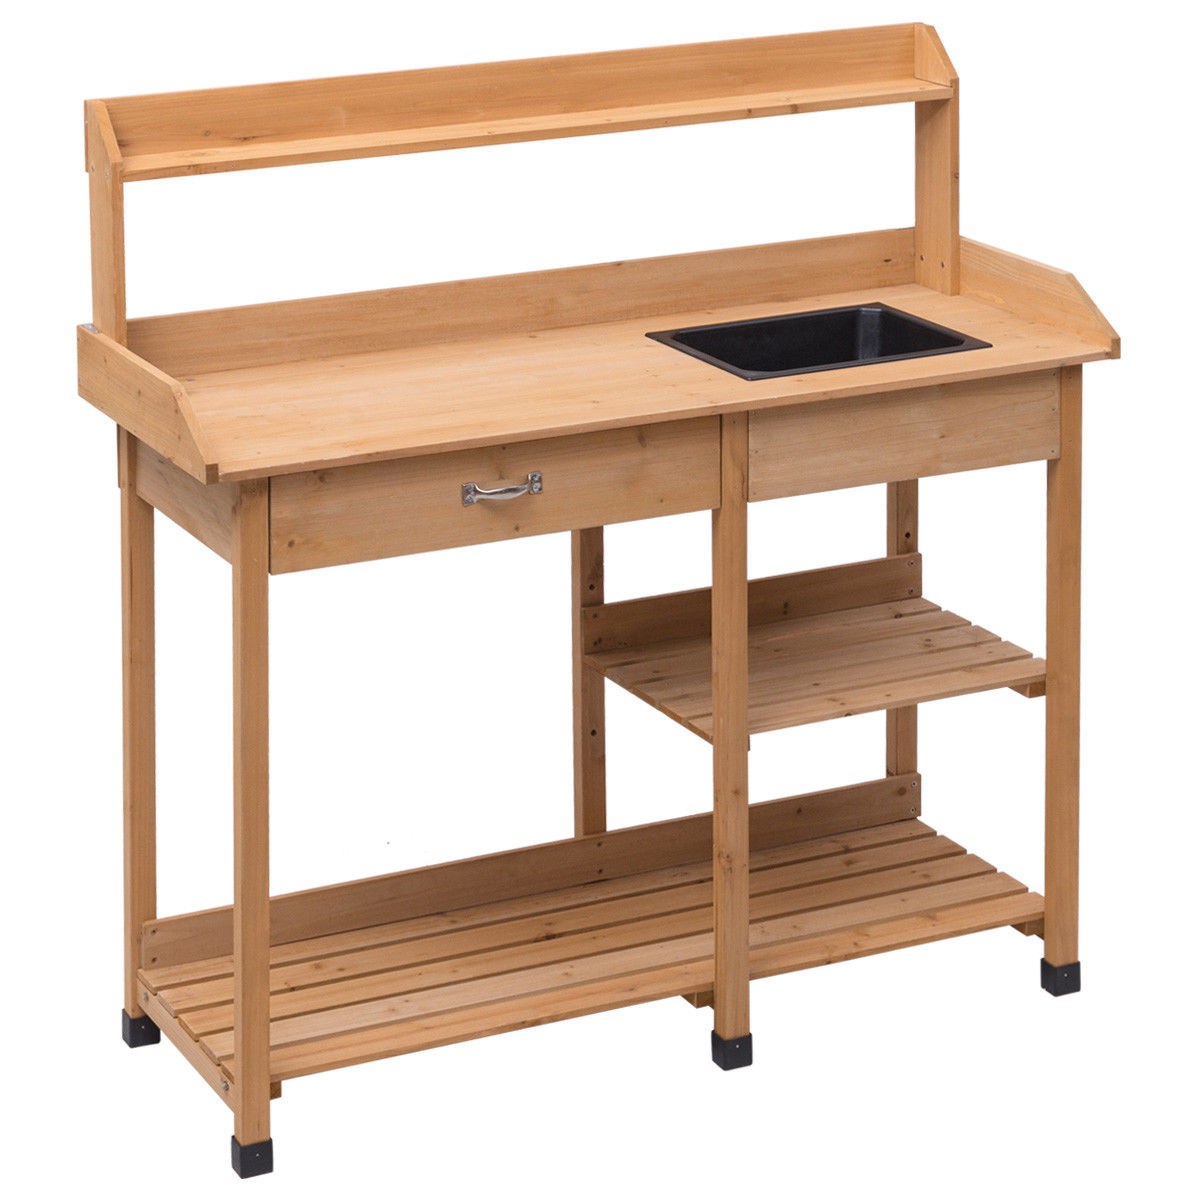 """GHP Outdoor 46""""Lx18""""Wx48""""H Durable and Sturdy Yellow Fir Wood Worktop Potting Bench"""